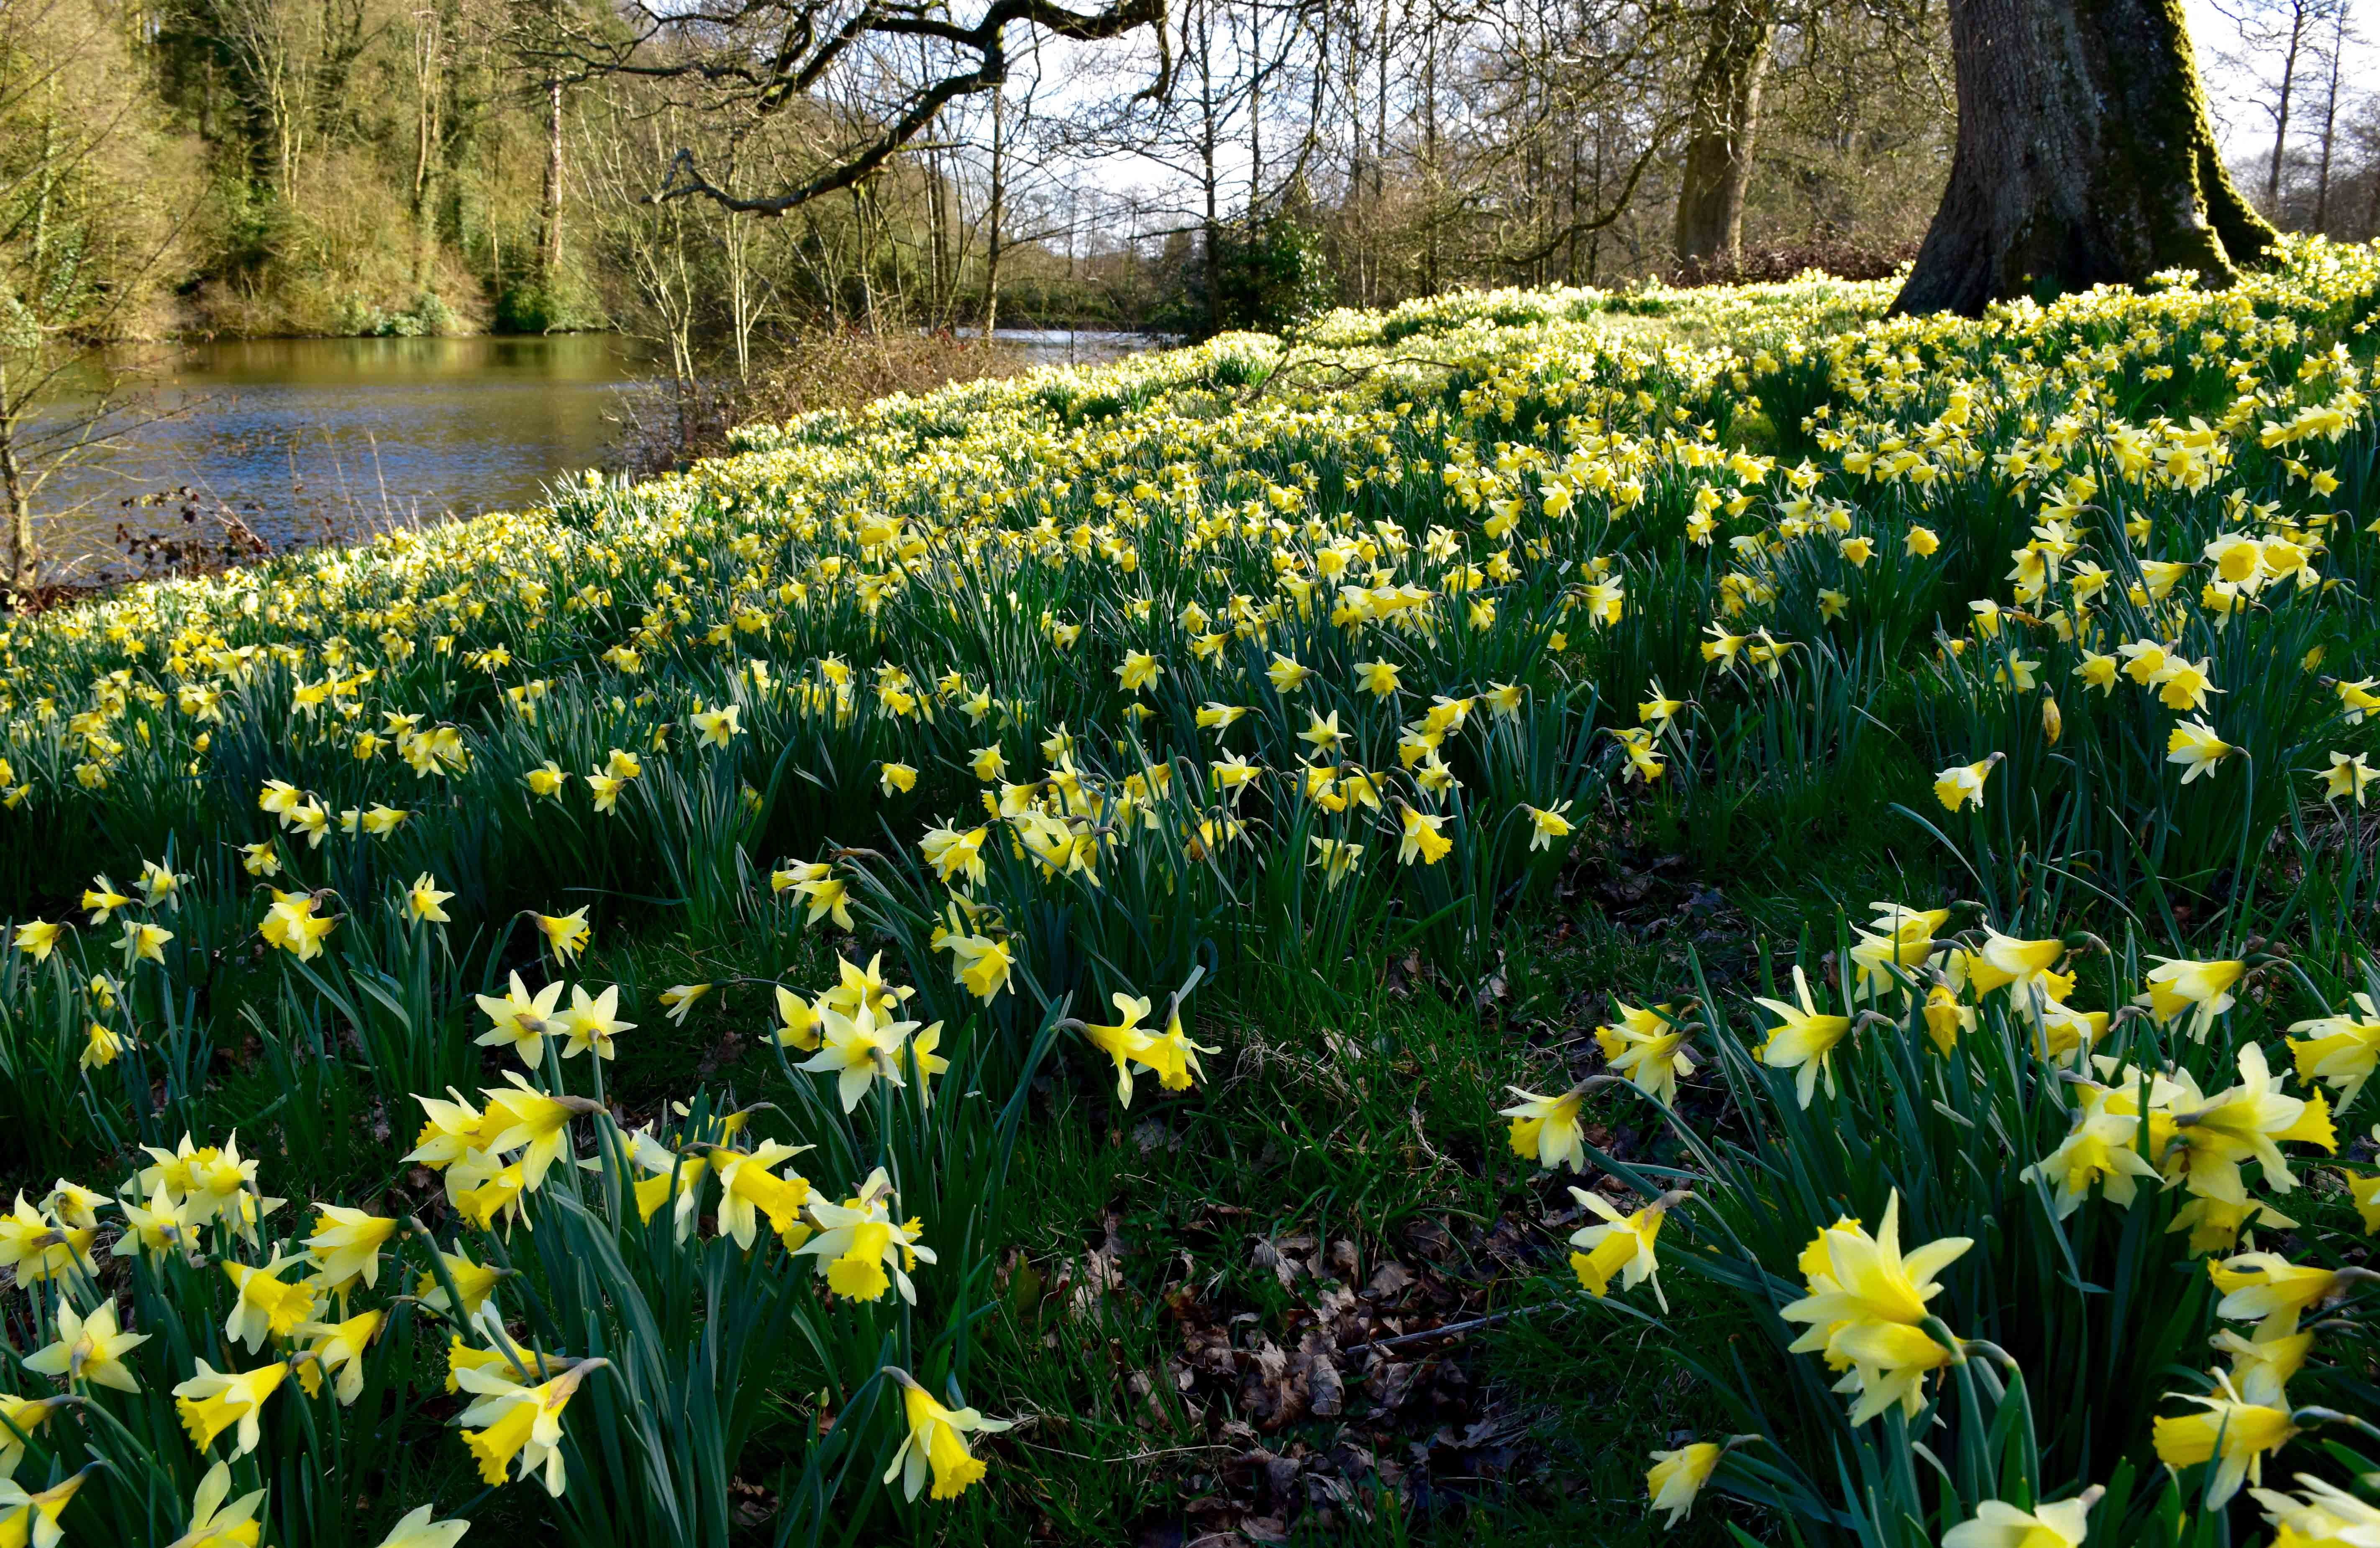 Best Places To See Daffodils In The Uk